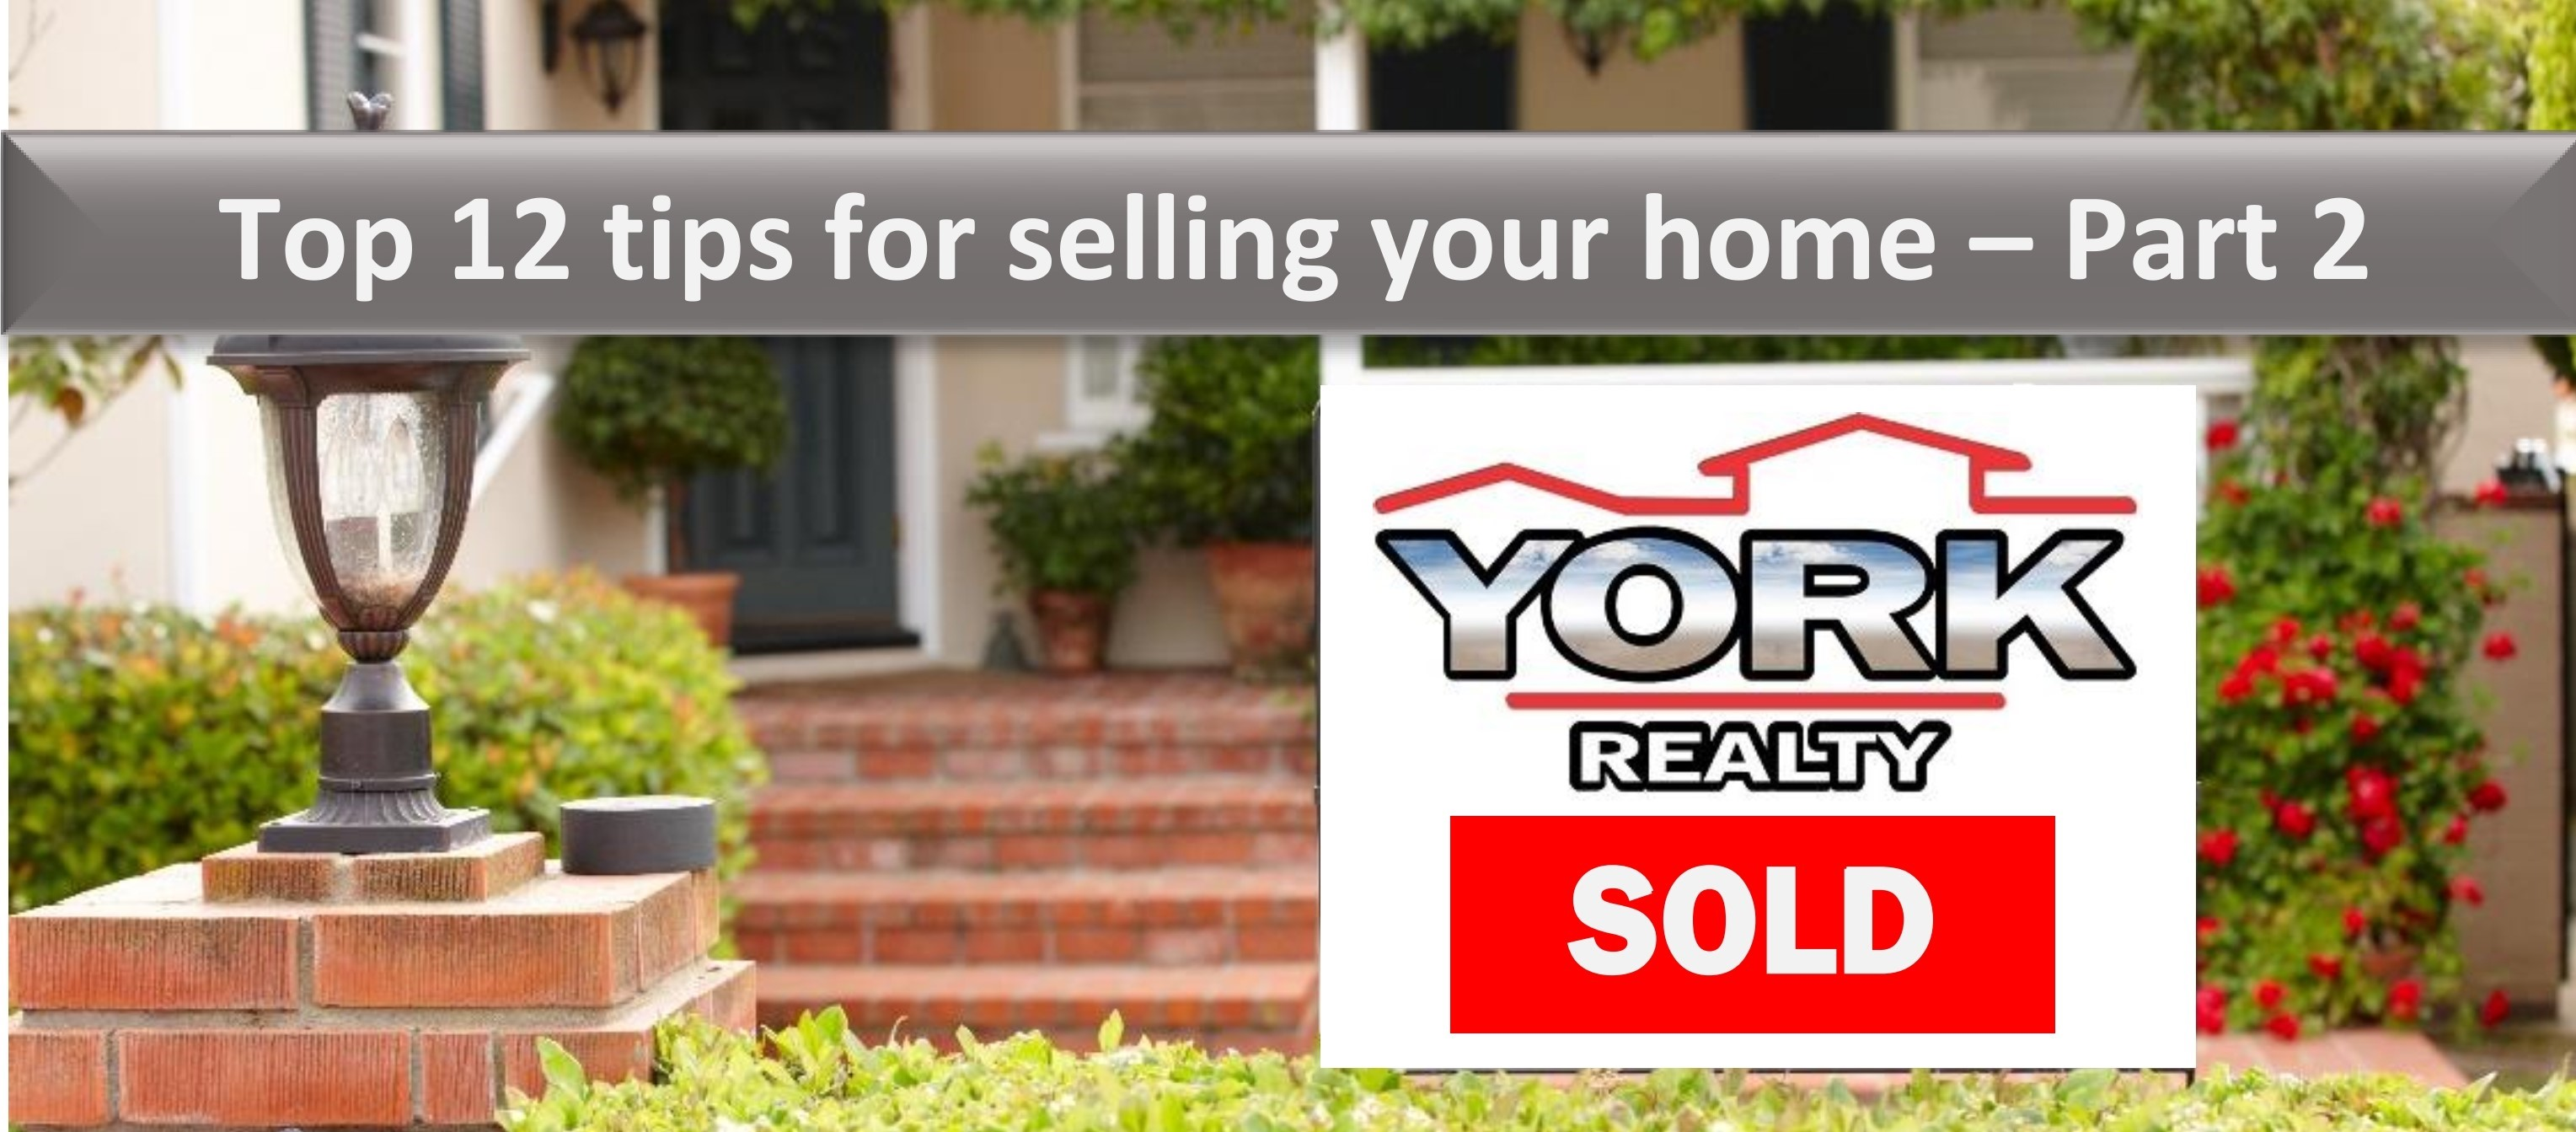 Top Tips for Selling Your Home - Part 2